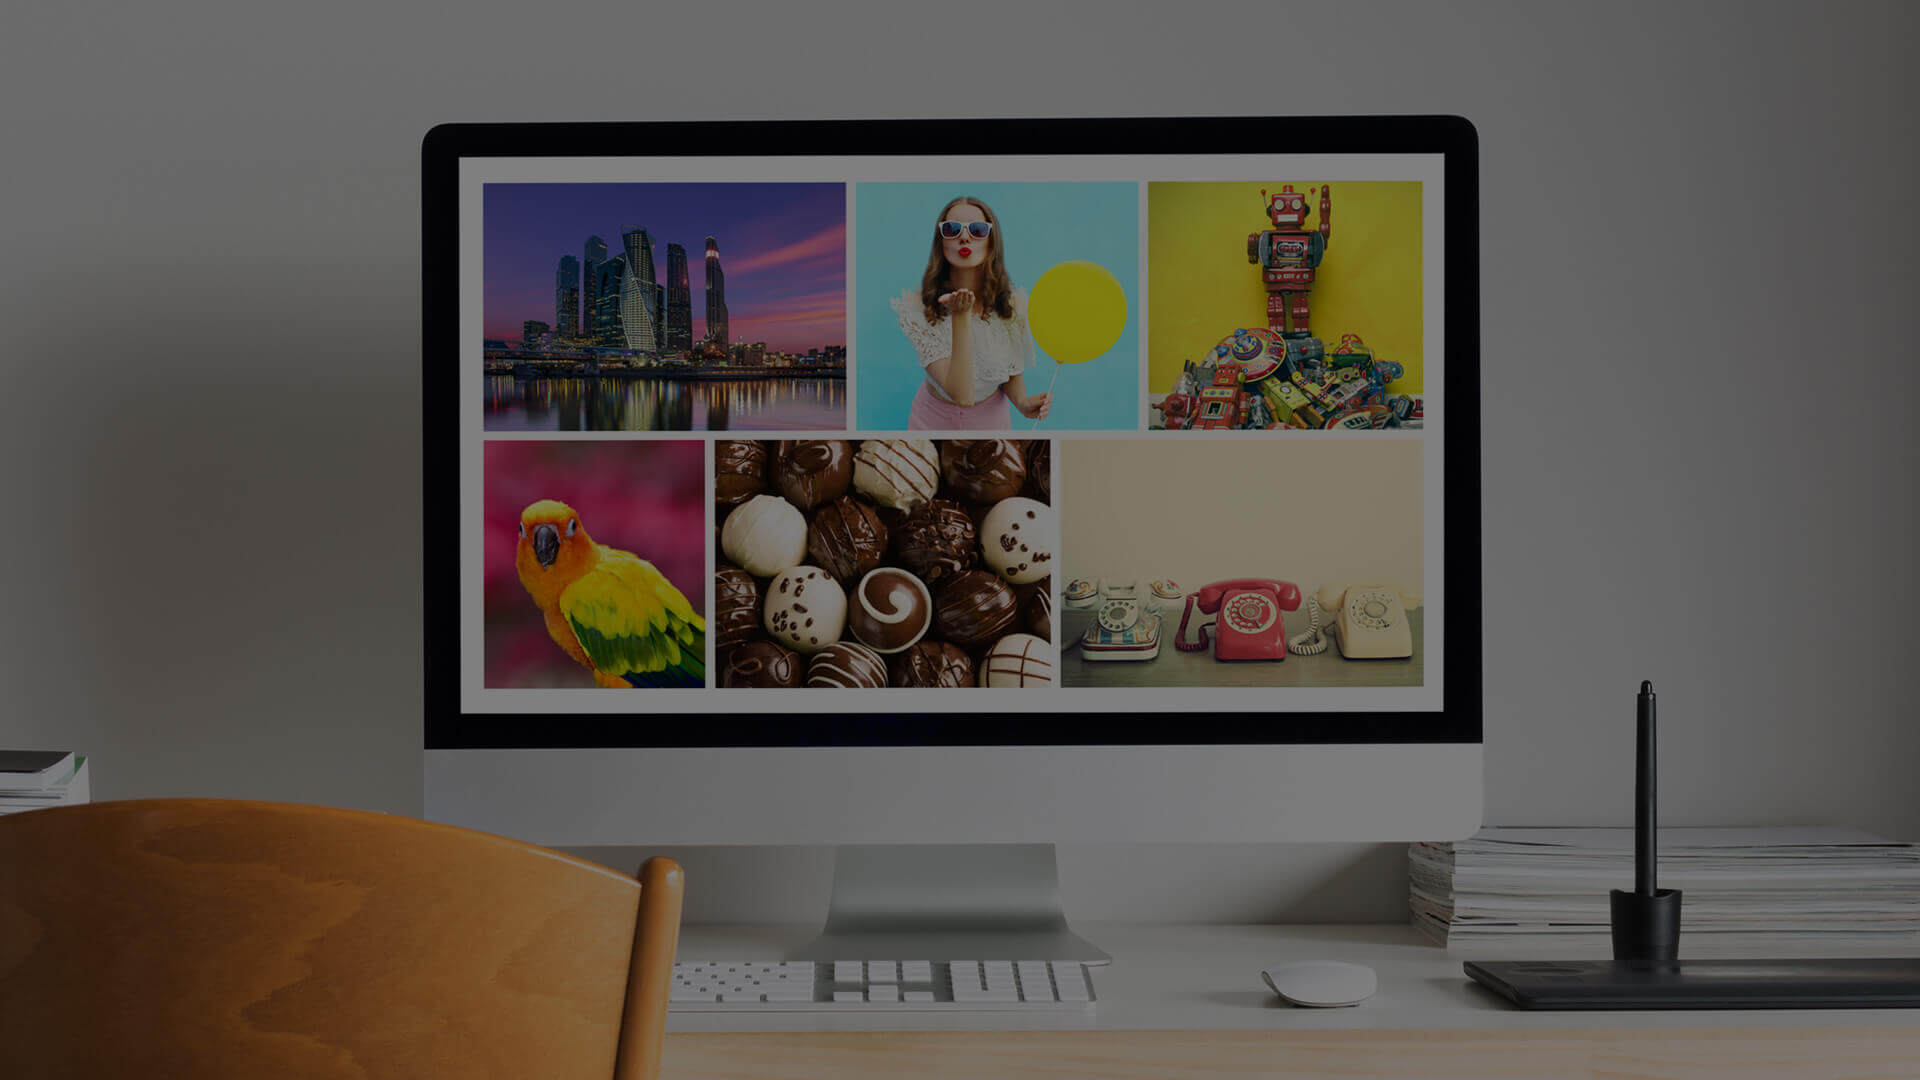 30 Excellent Sites to Get Royalty Free Stock Photos